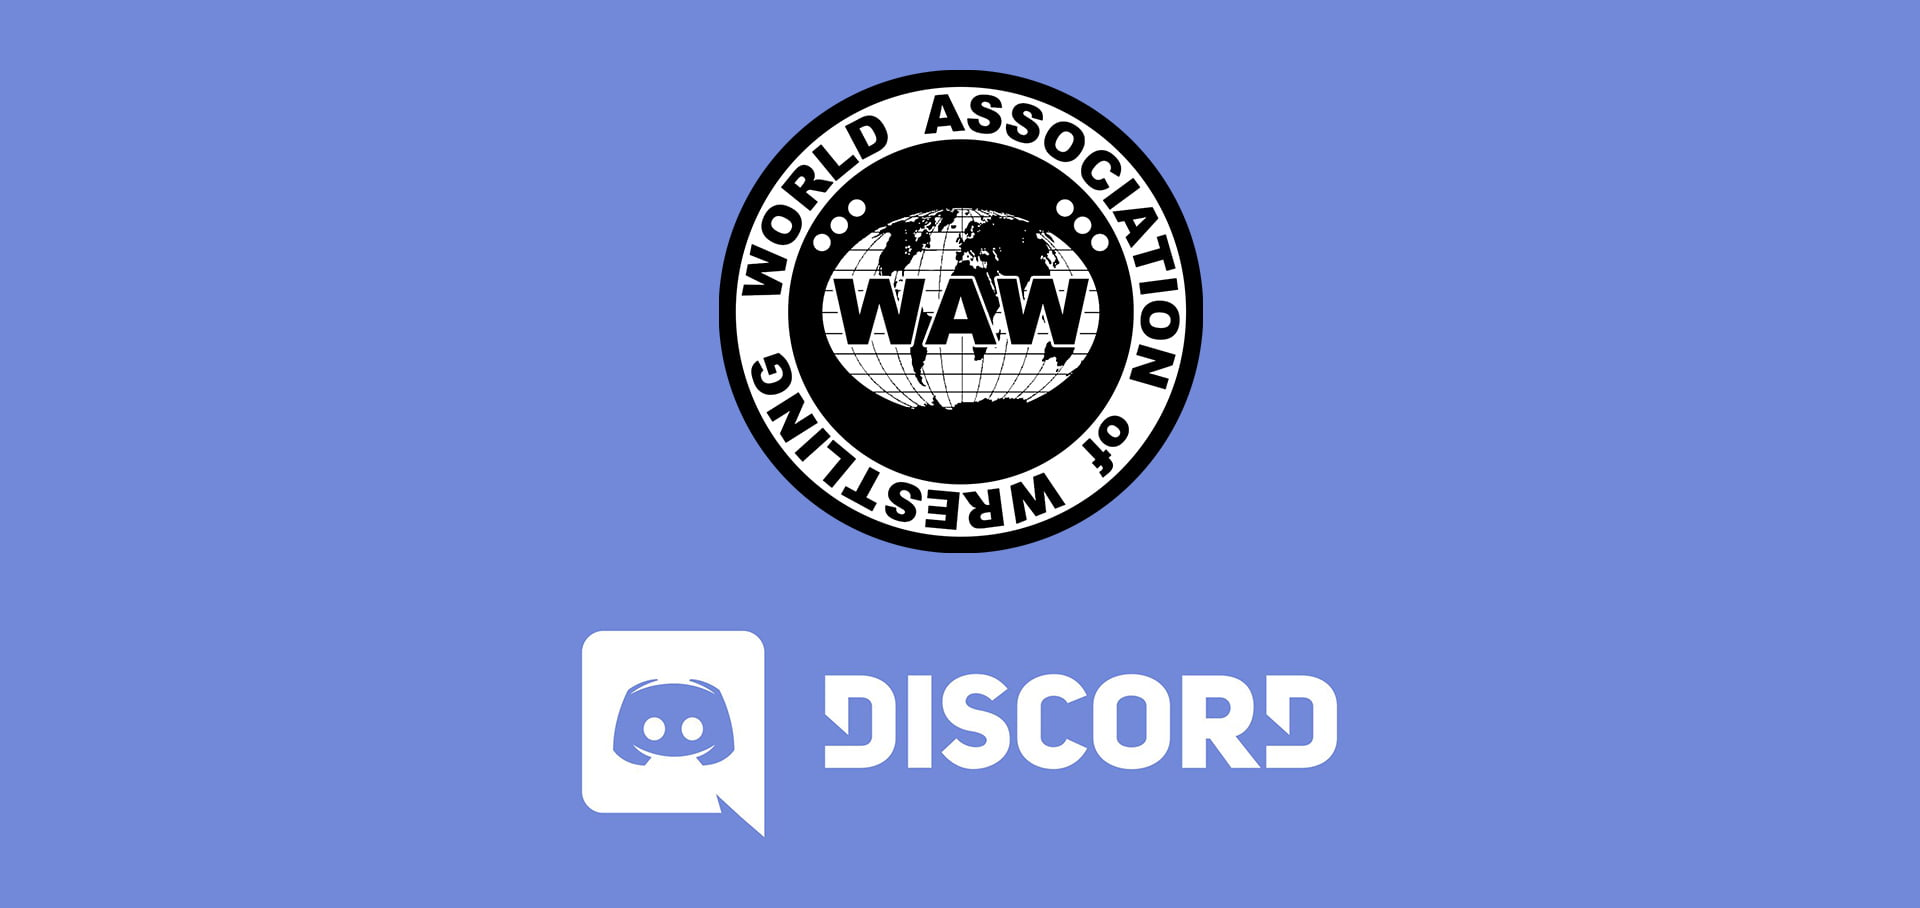 WAW Discord Featured Image